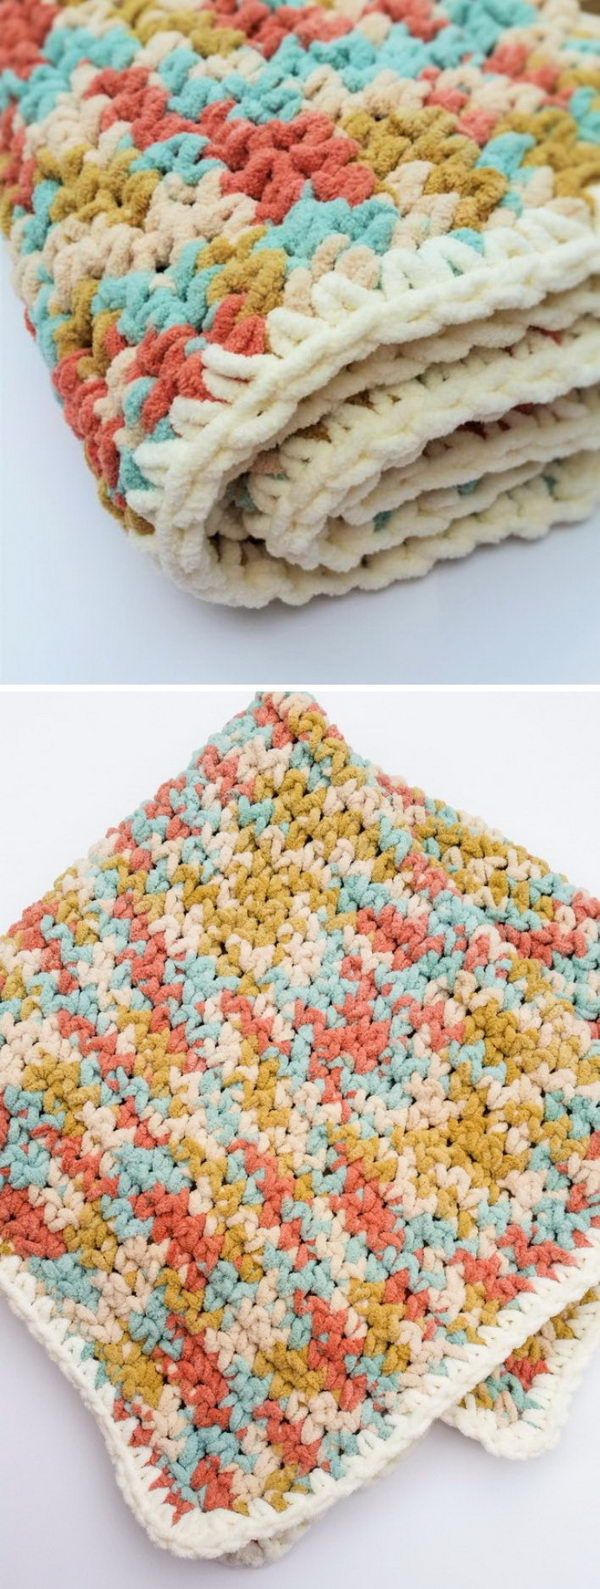 30 free crochet patterns for blankets easy crochet crochet 30 free crochet patterns for blankets bankloansurffo Images